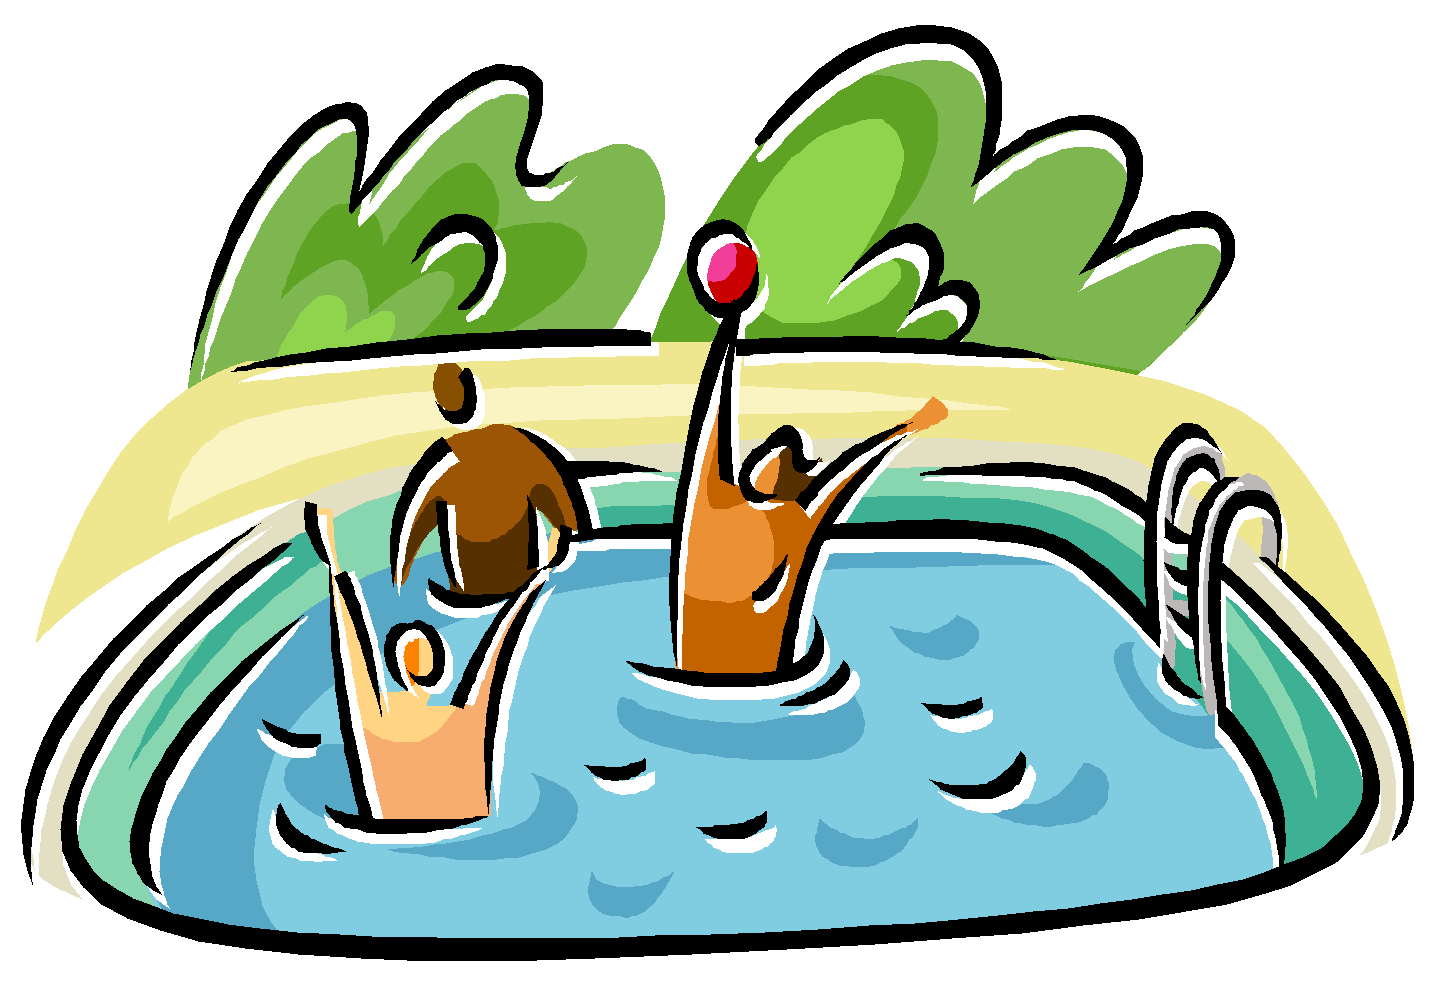 Swimming Pool Clip Art : Swimming pool cartoon clipart suggest